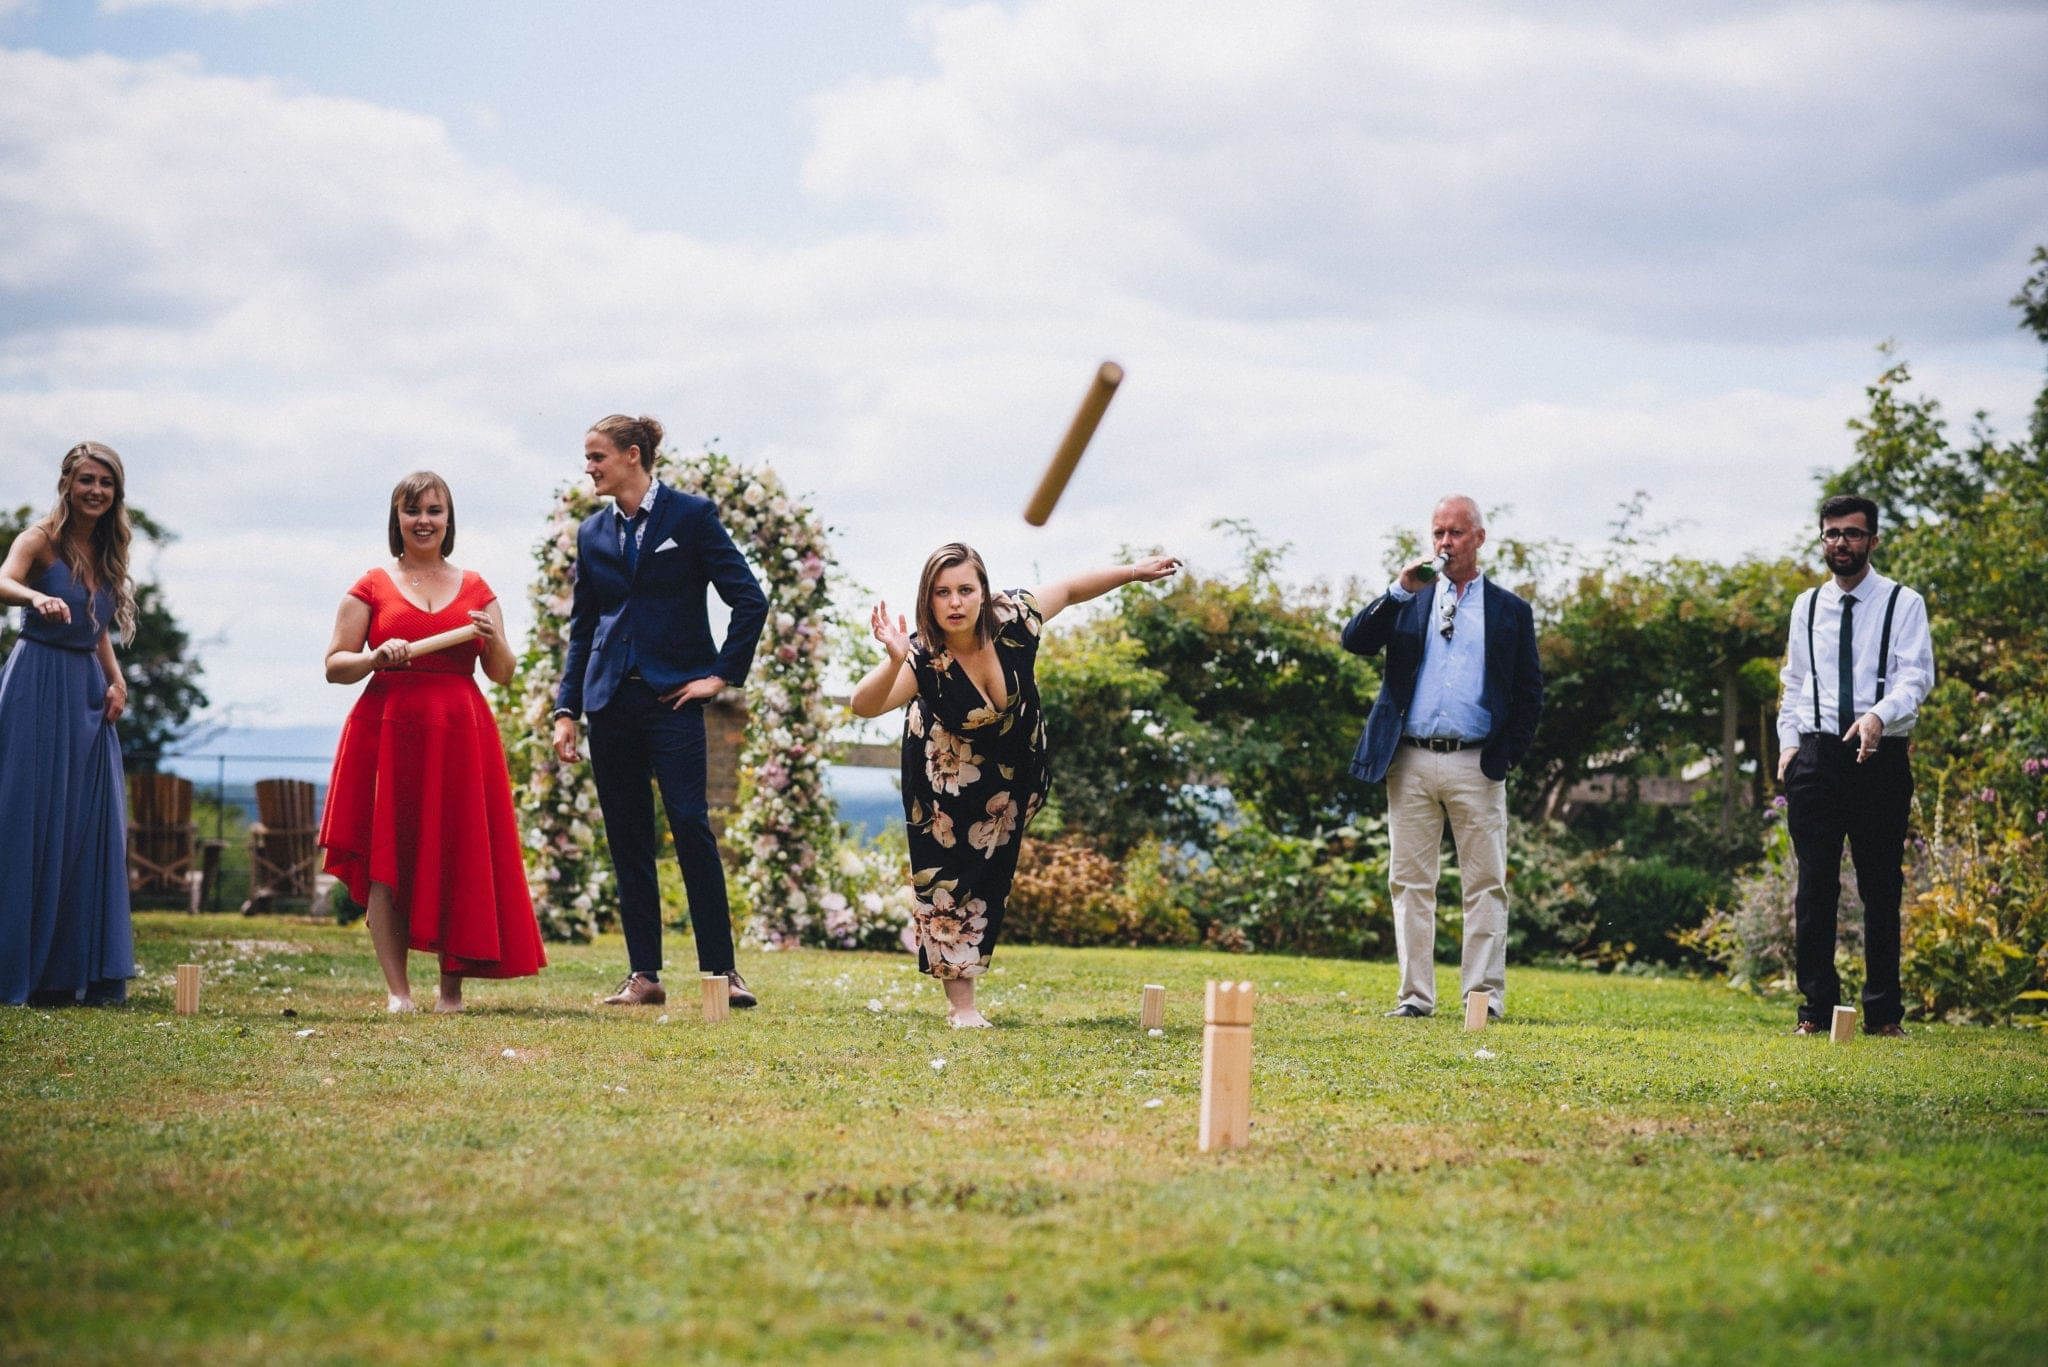 Guests playing a Swedish lawn game, throwing blocks in the grounds of Dewsall Court